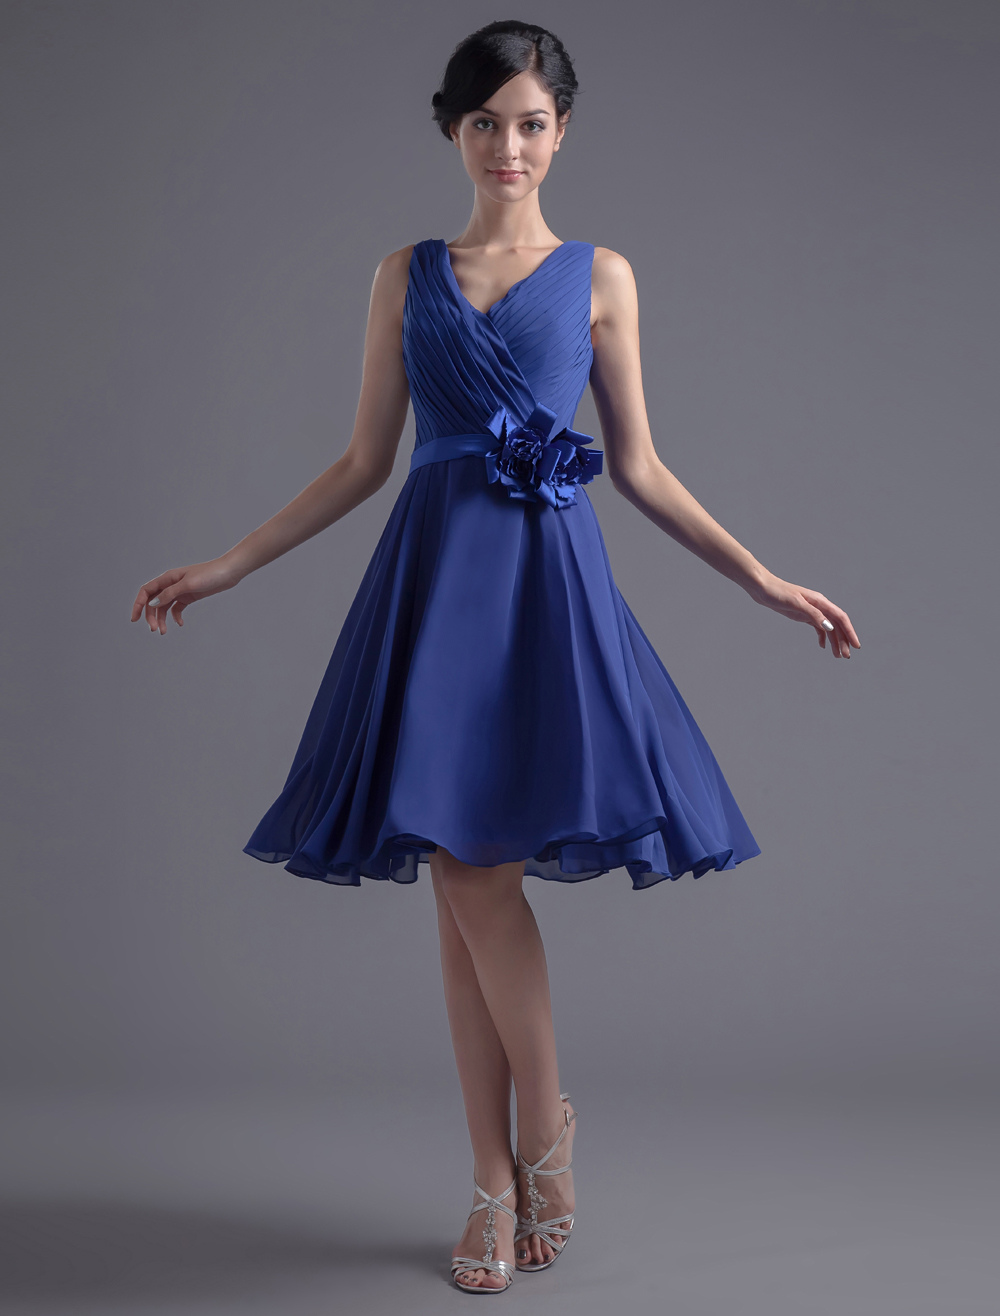 A-line Royal Blue Chiffon Floral V-Neck Bridesmaid Dress For Wedding